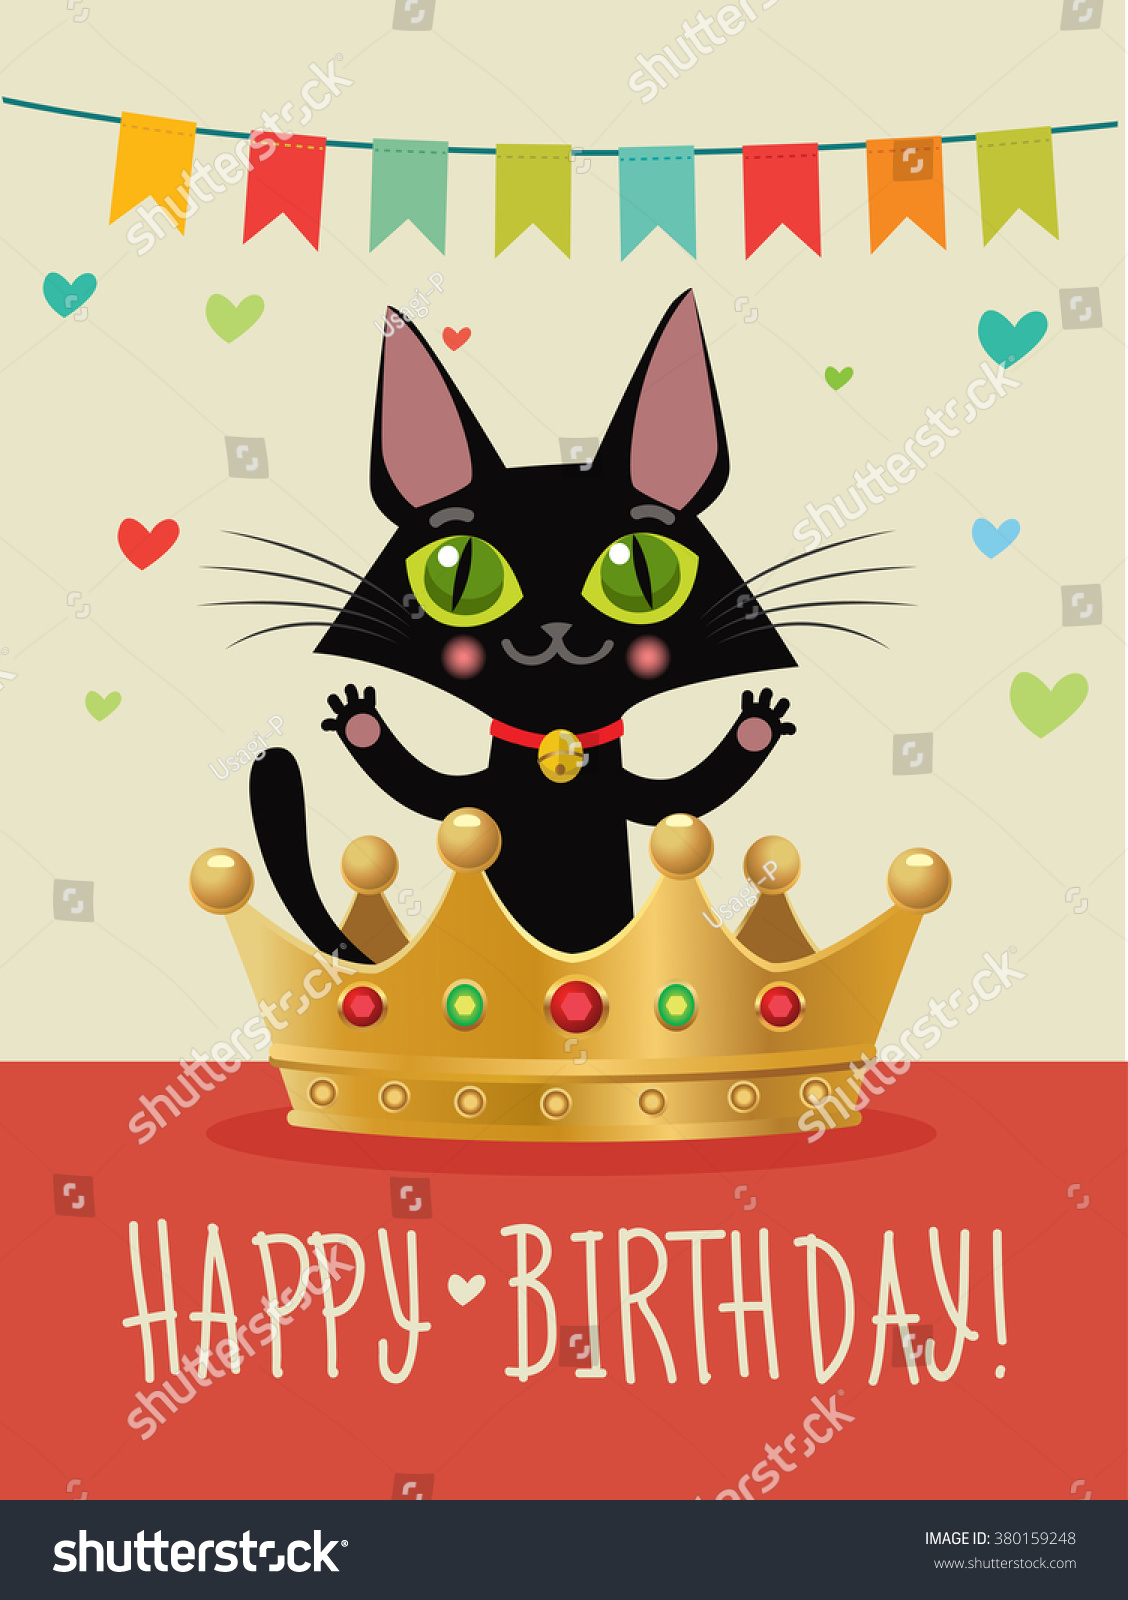 Happy Birthday Card With Funny Black Cat And Gold Crown Wish Humor Greeting